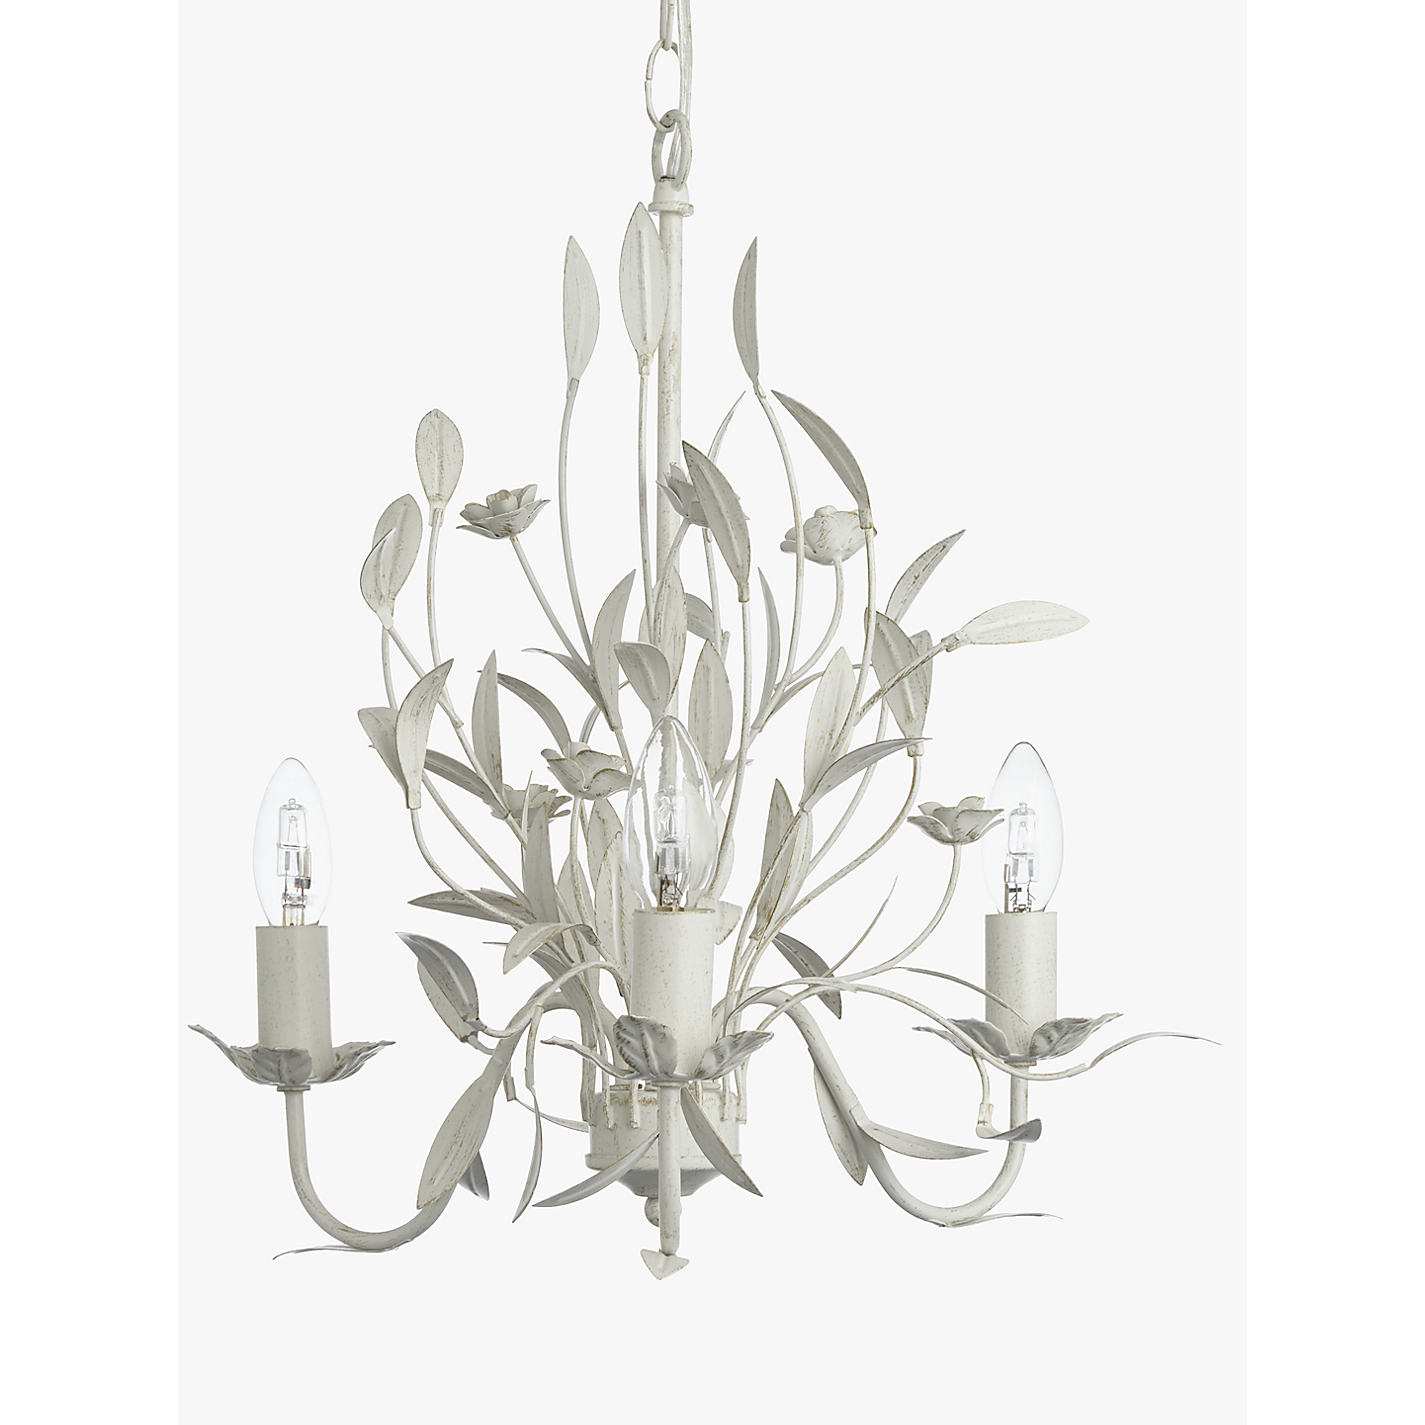 Buy john lewis lily ceiling light 3 arm ivory john lewis buy john lewis lily ceiling light 3 arm ivory online at johnlewis aloadofball Gallery